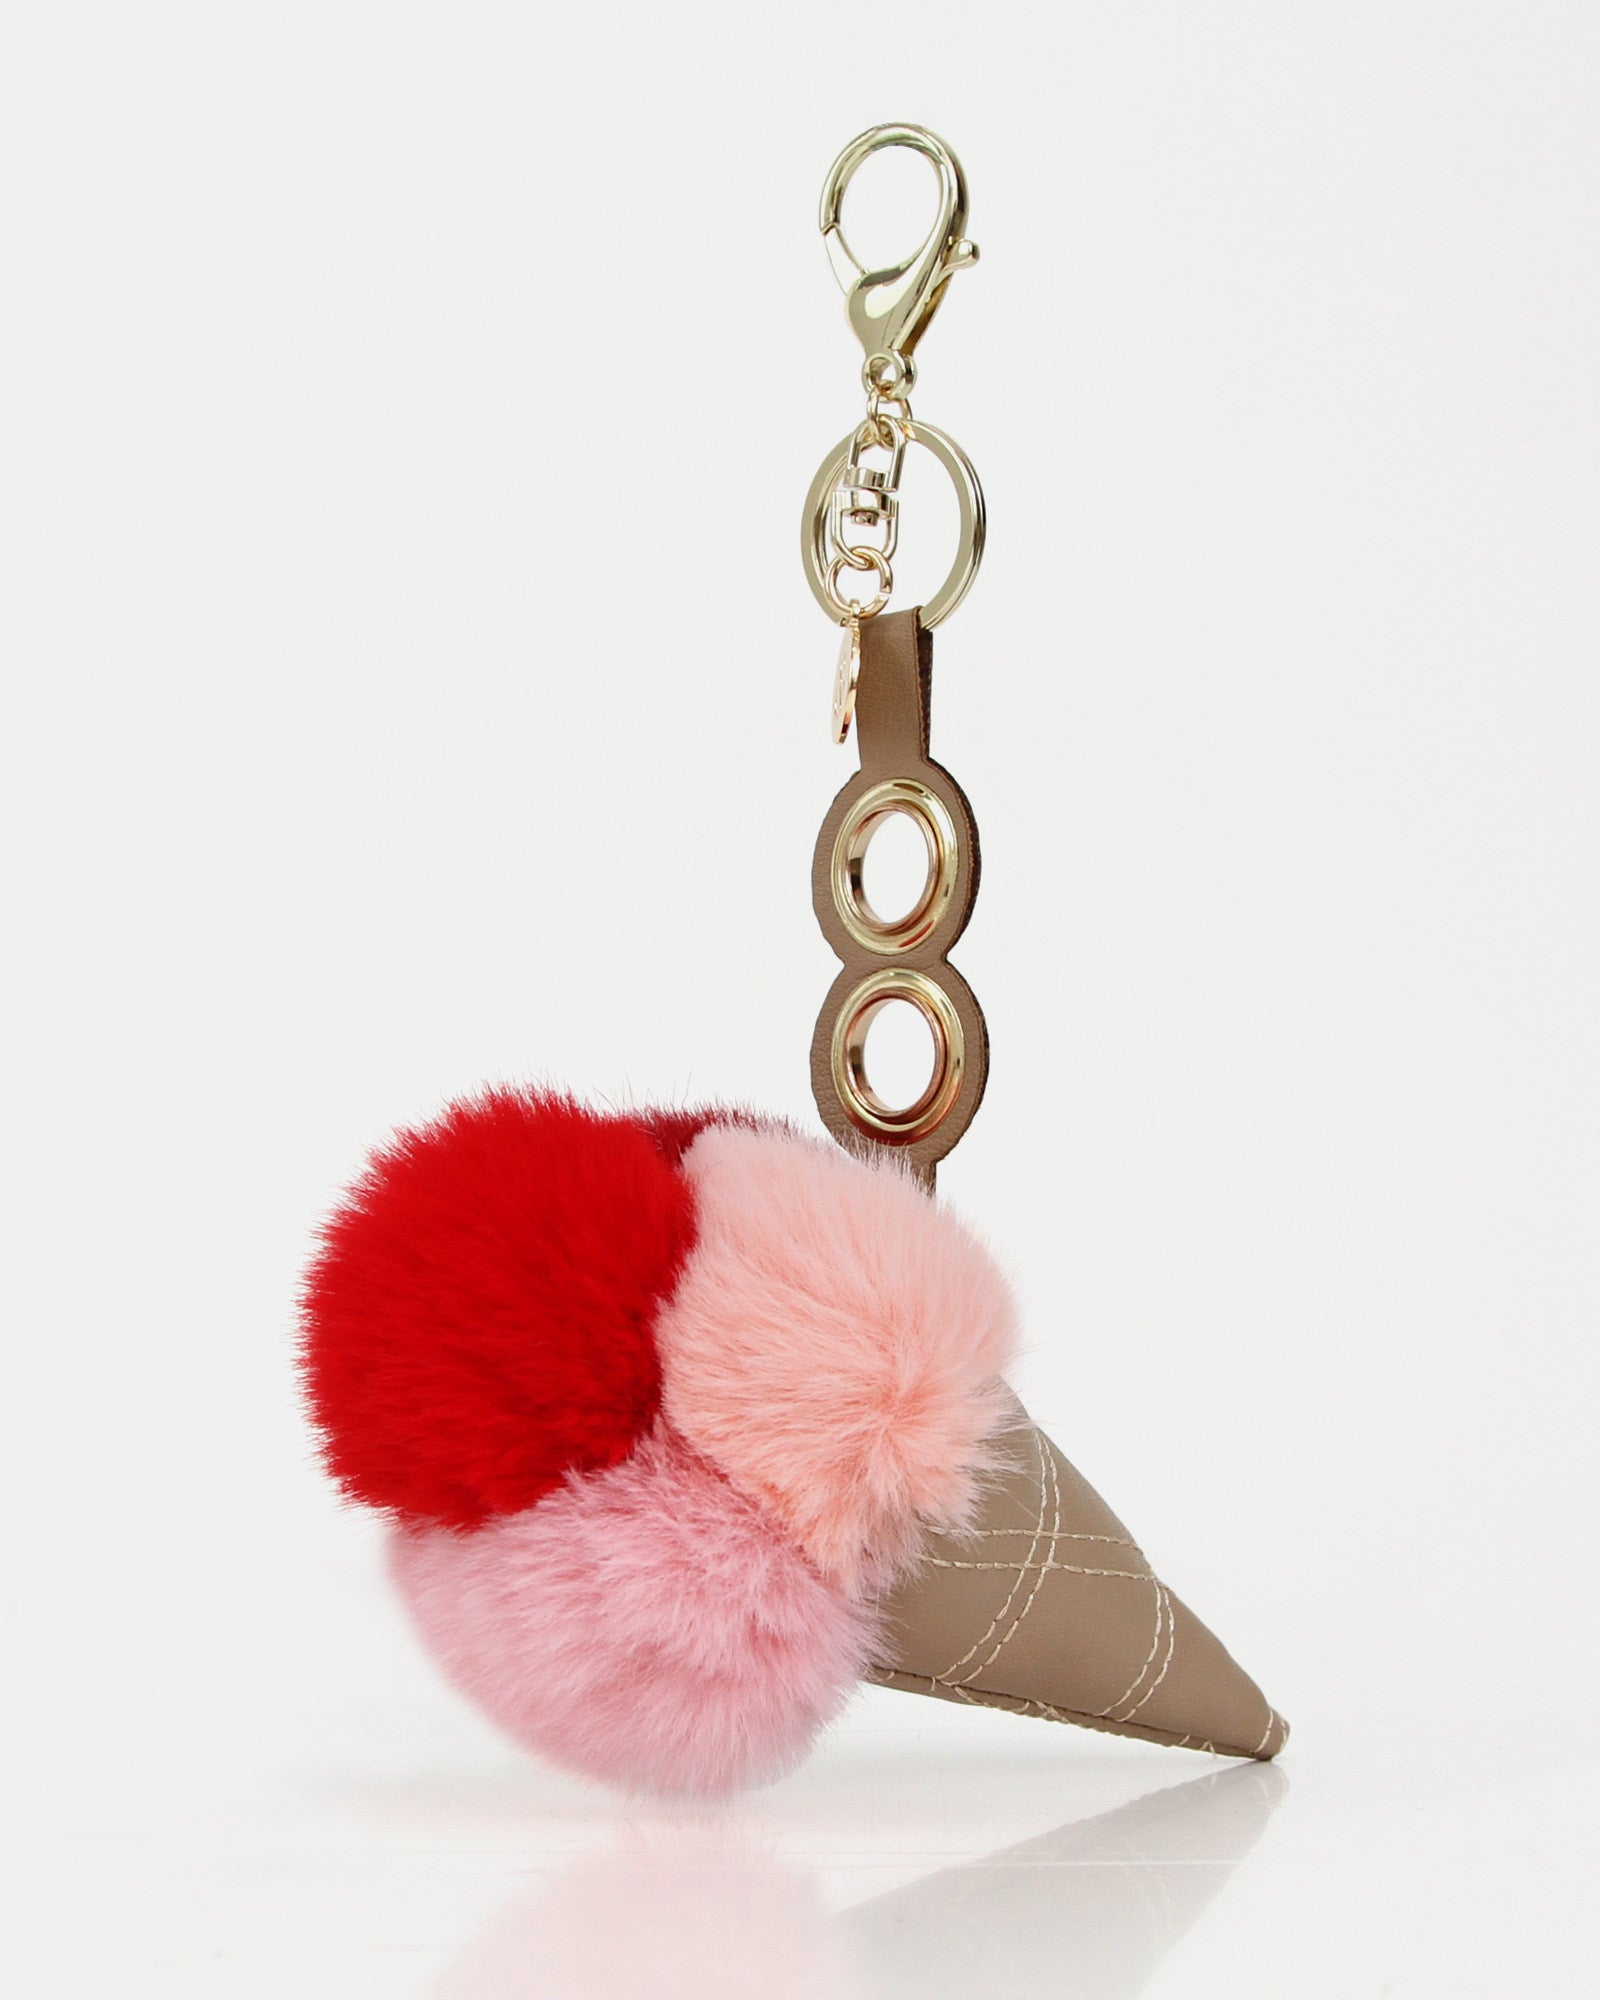 red-pastel-icecream-cone-keychain.jpg